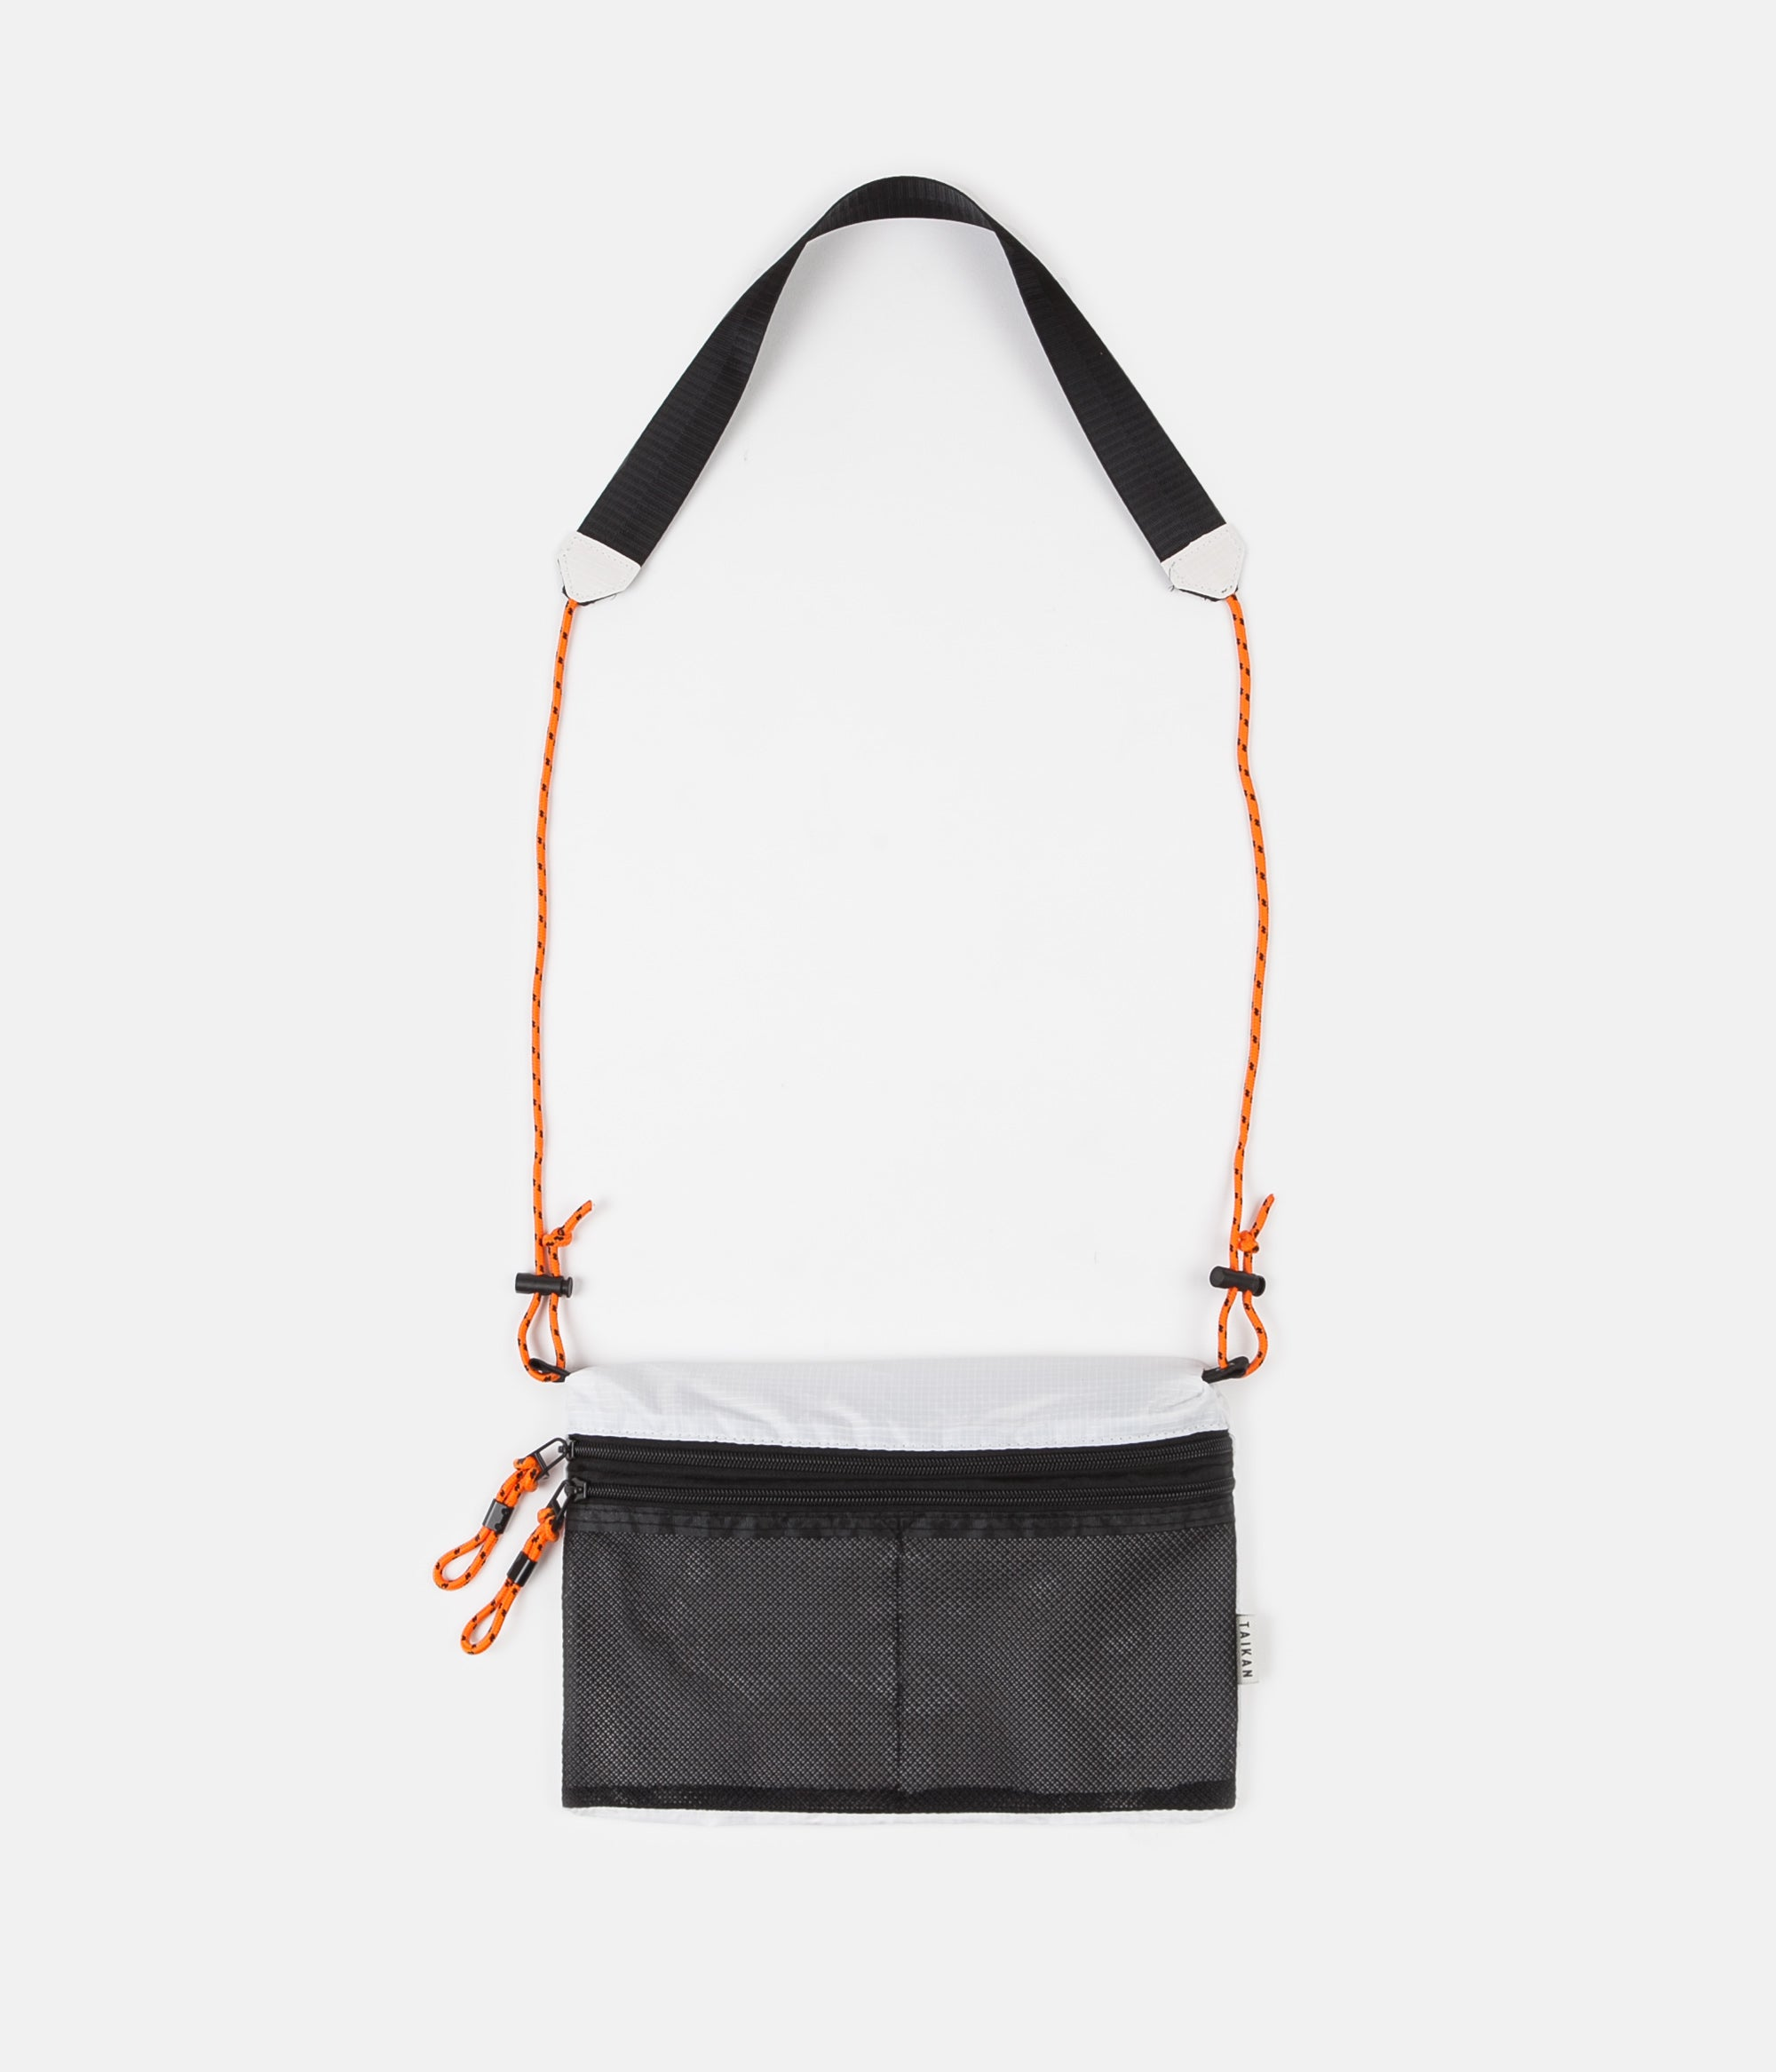 Taikan Everything Sacoche Bag - White / Black / Orange - Large